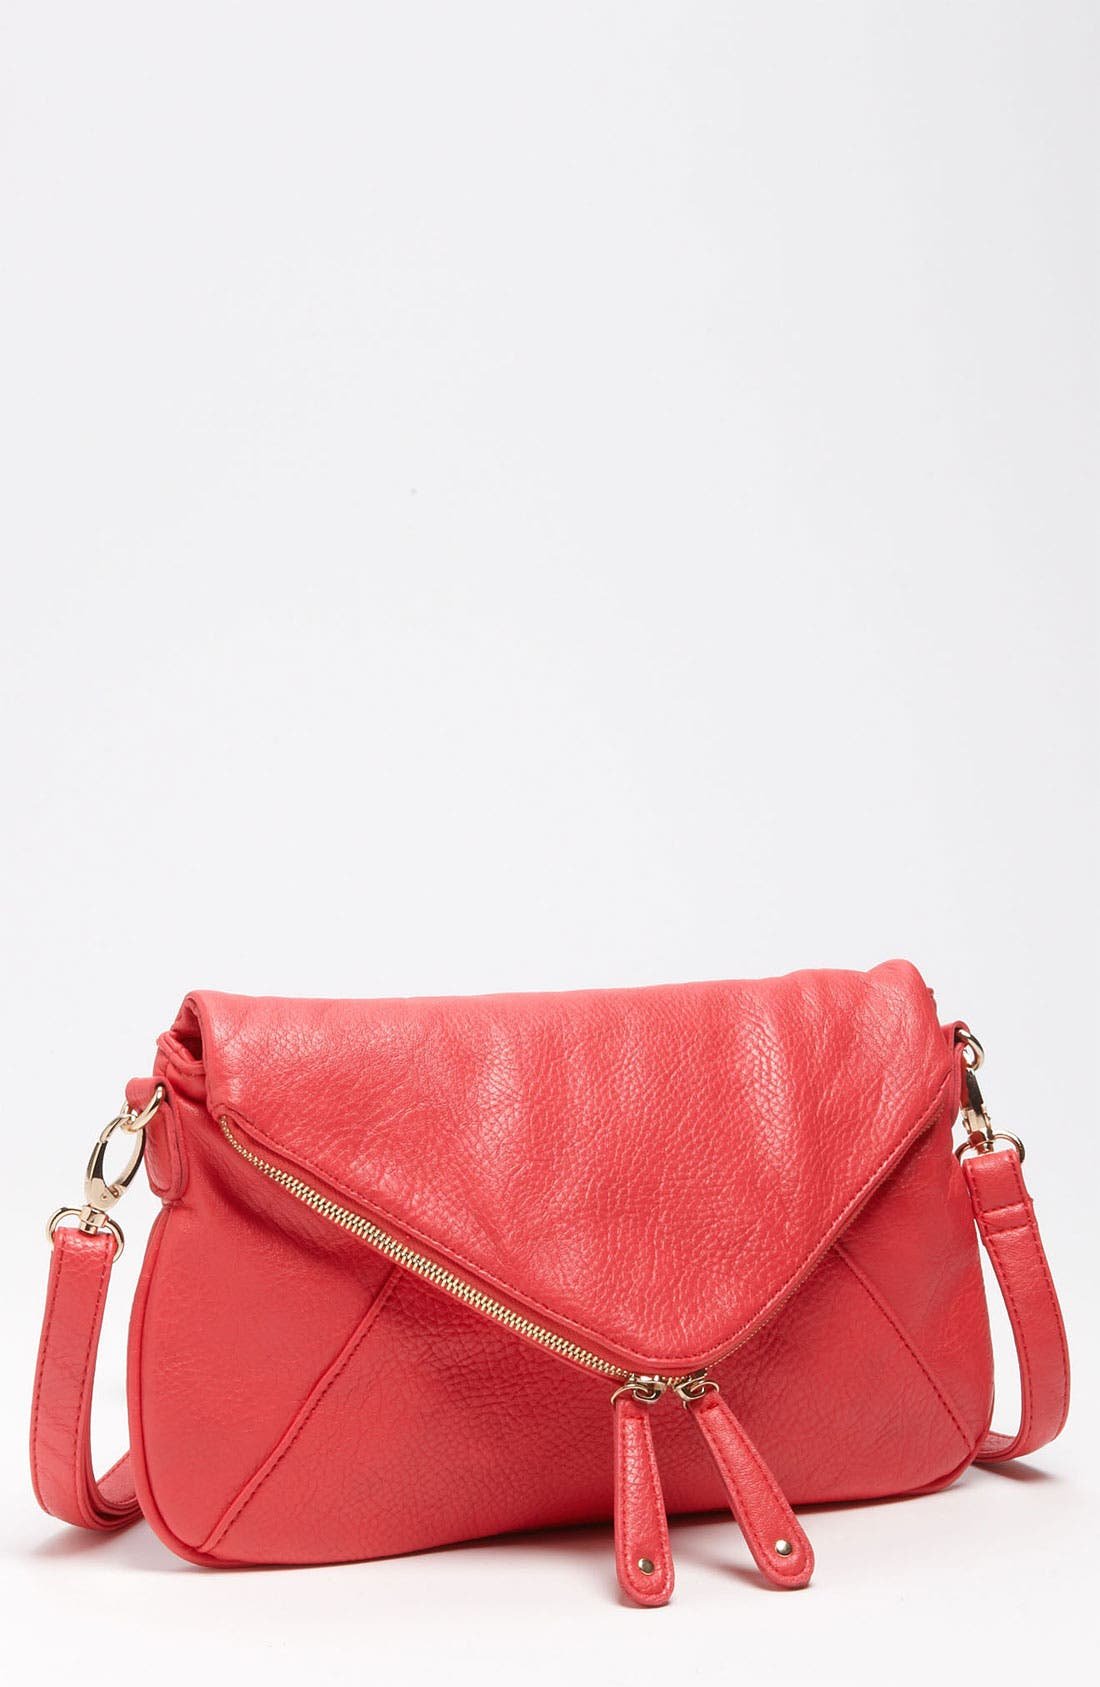 Alternate Image 1 Selected - Street Level Convertible Crossbody Envelope Bag